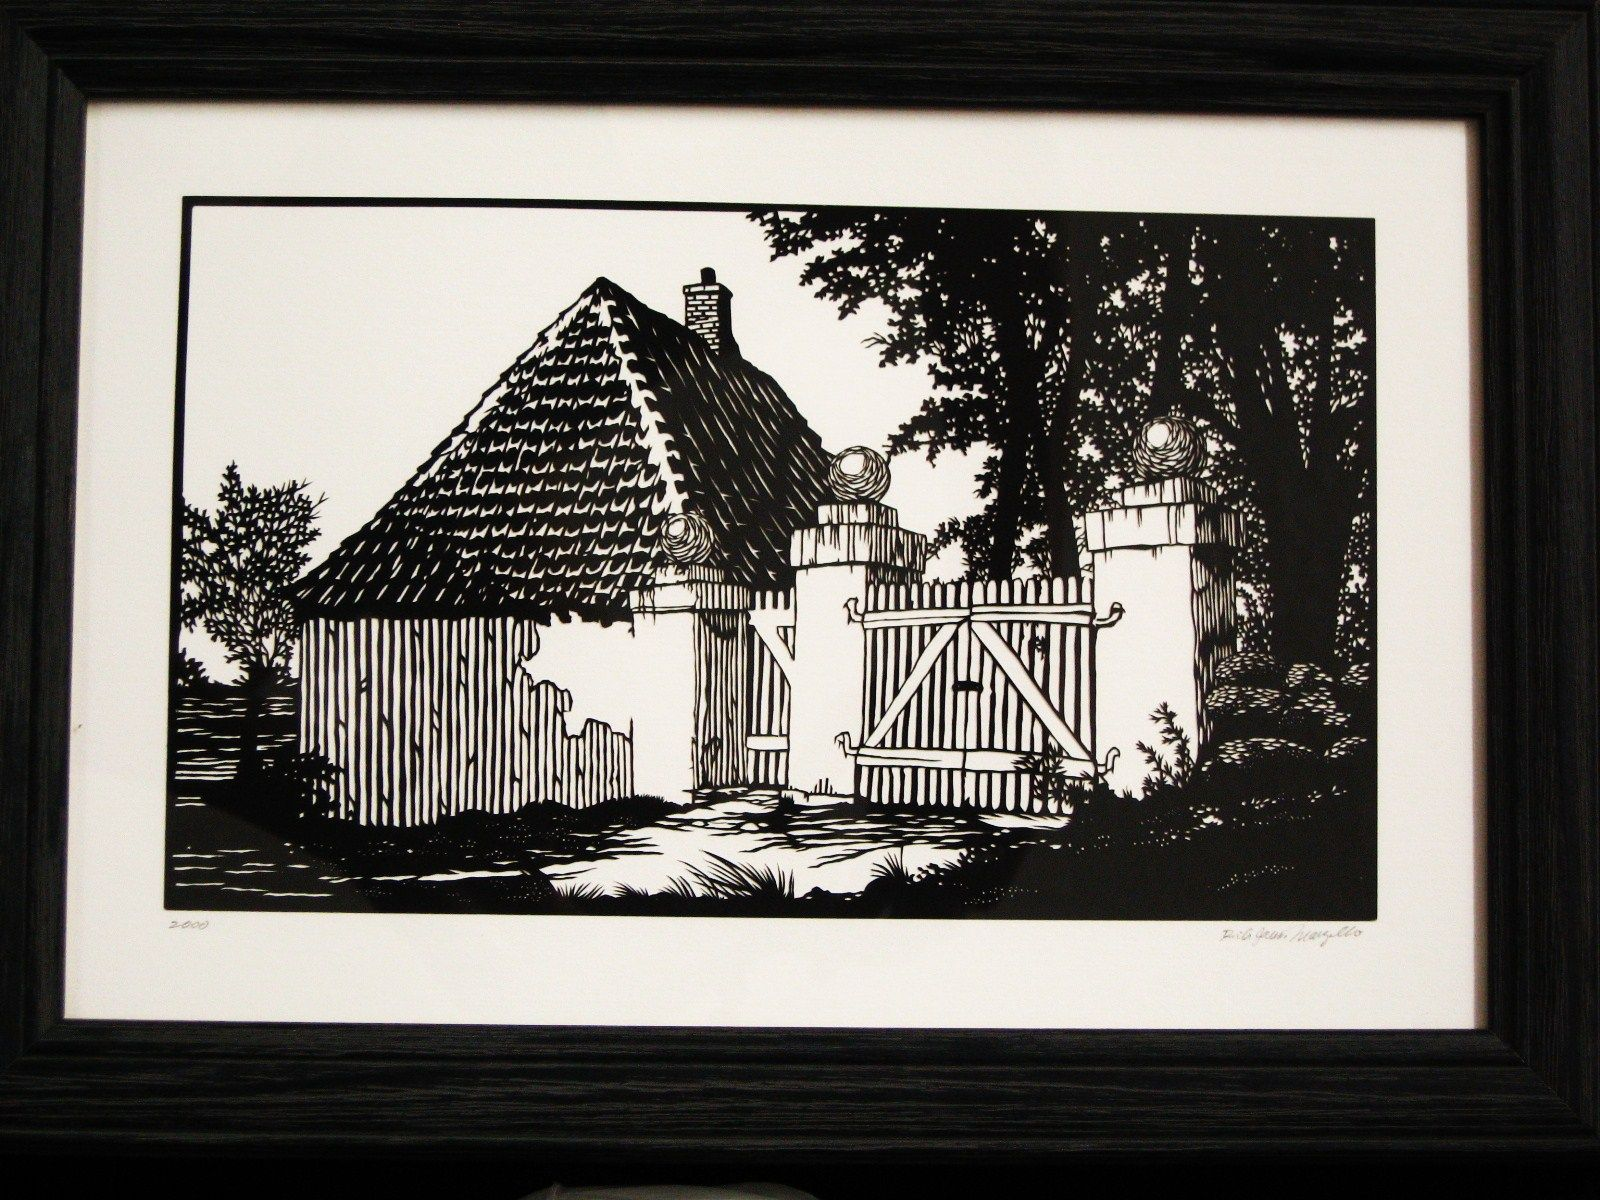 Papercutting By Rick James Marzullo.